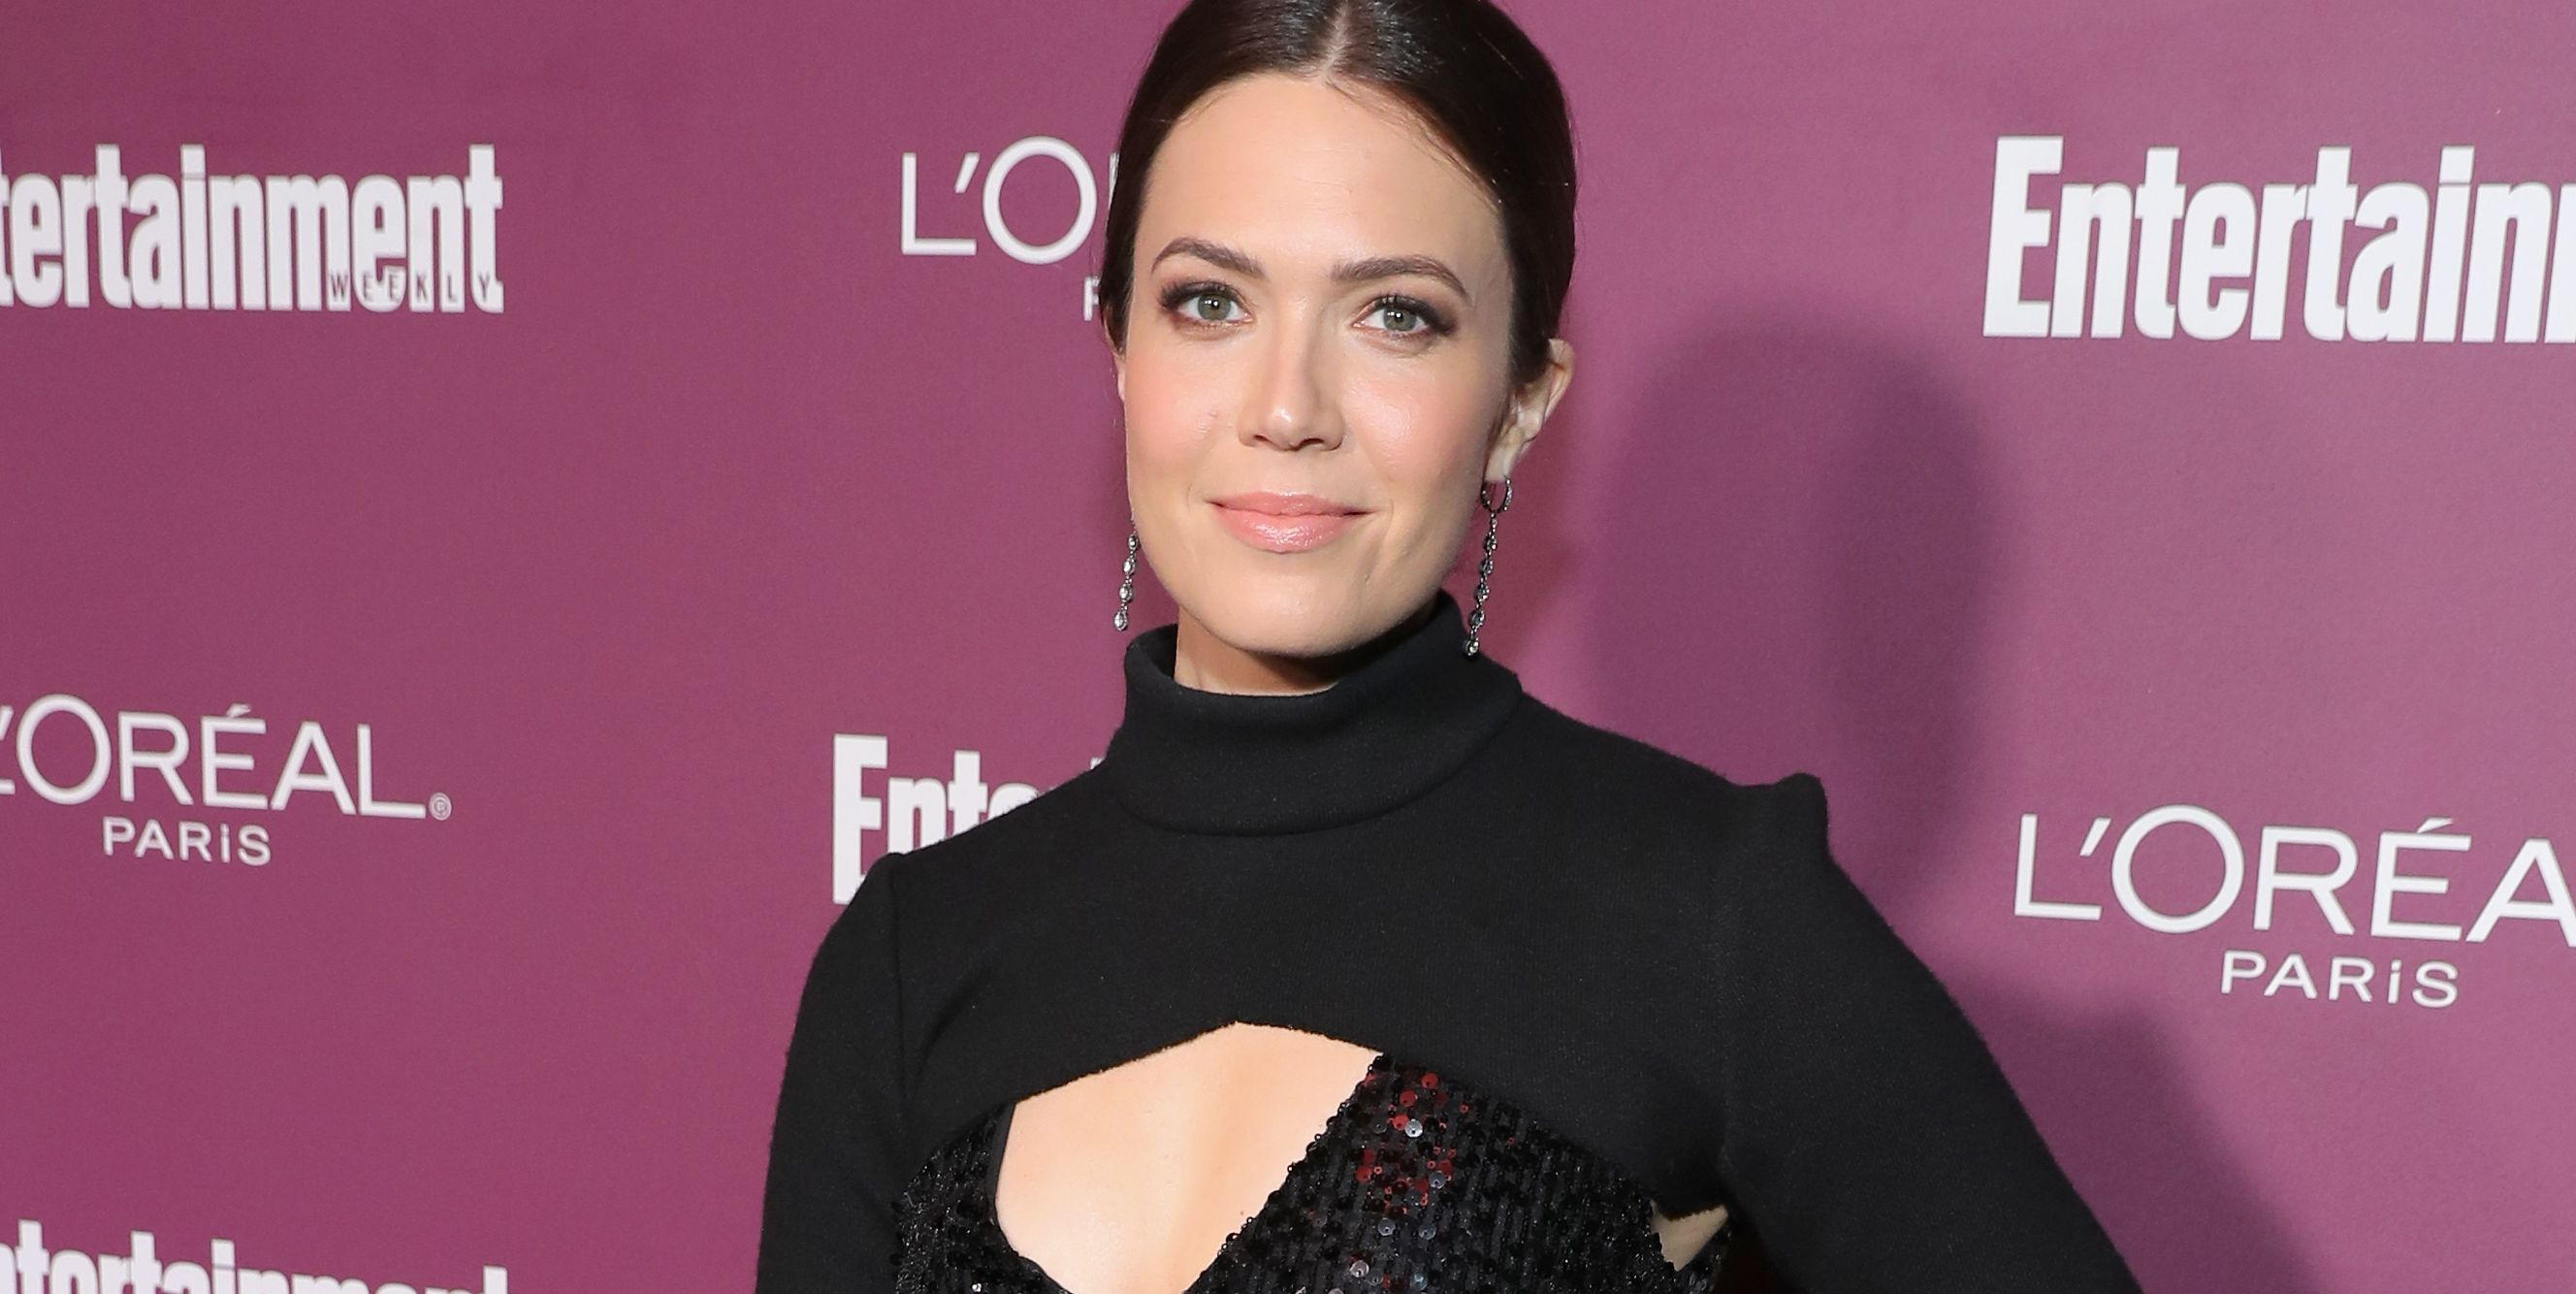 Here's Your First Look at Mandy Moore's Stunning Engagement Ring